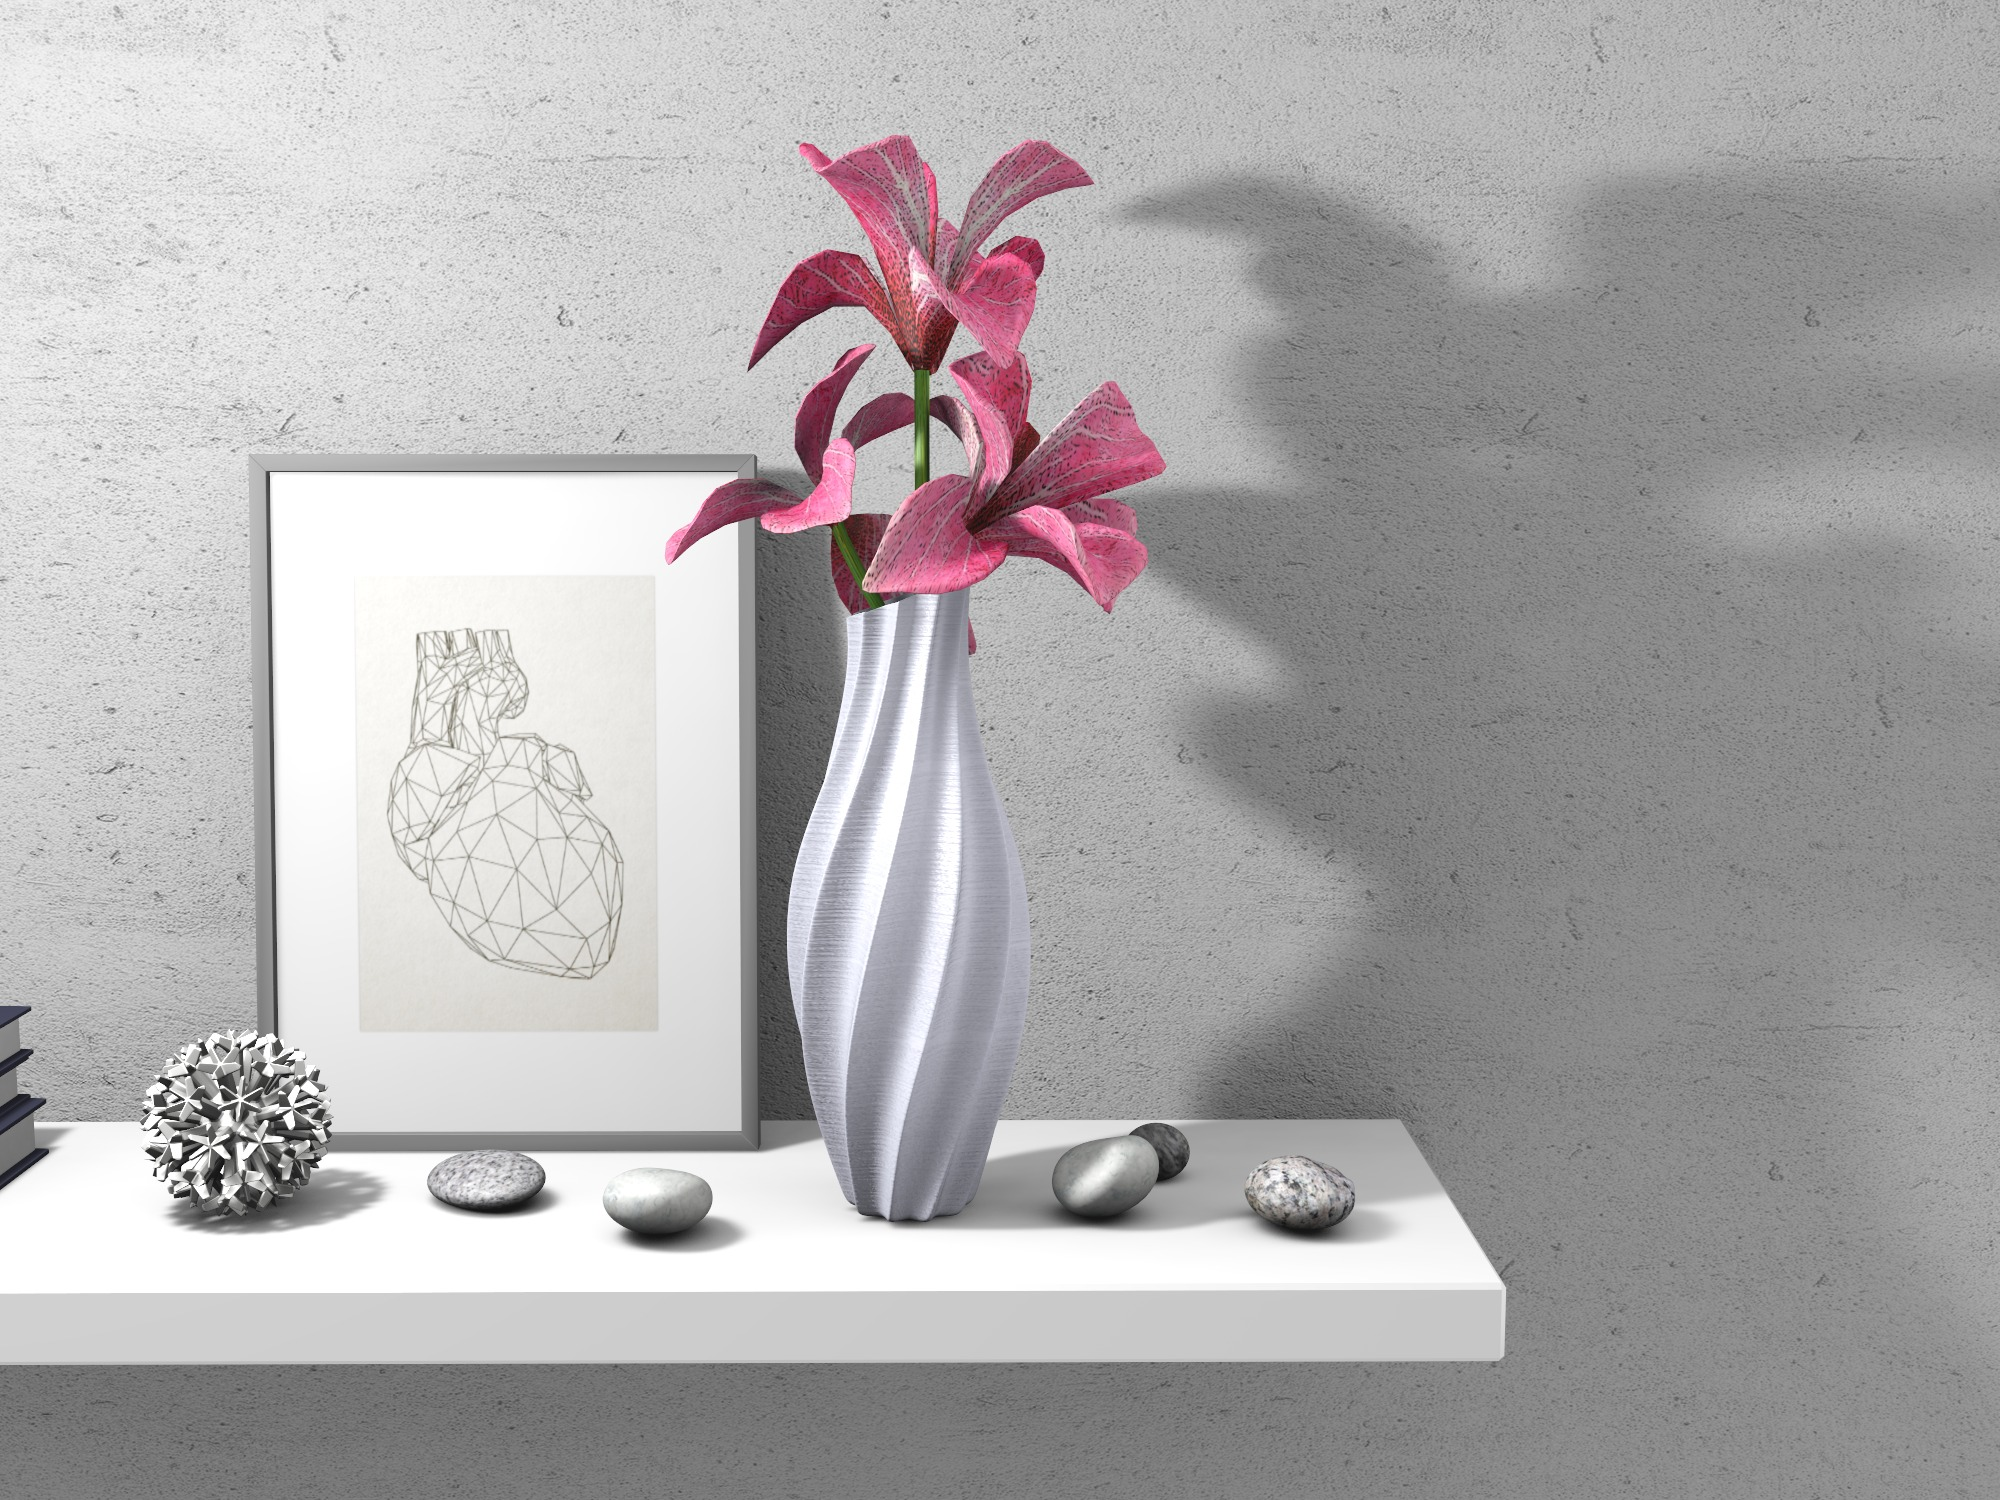 Vase - 3D design by Adrian on Aug 15, 2018